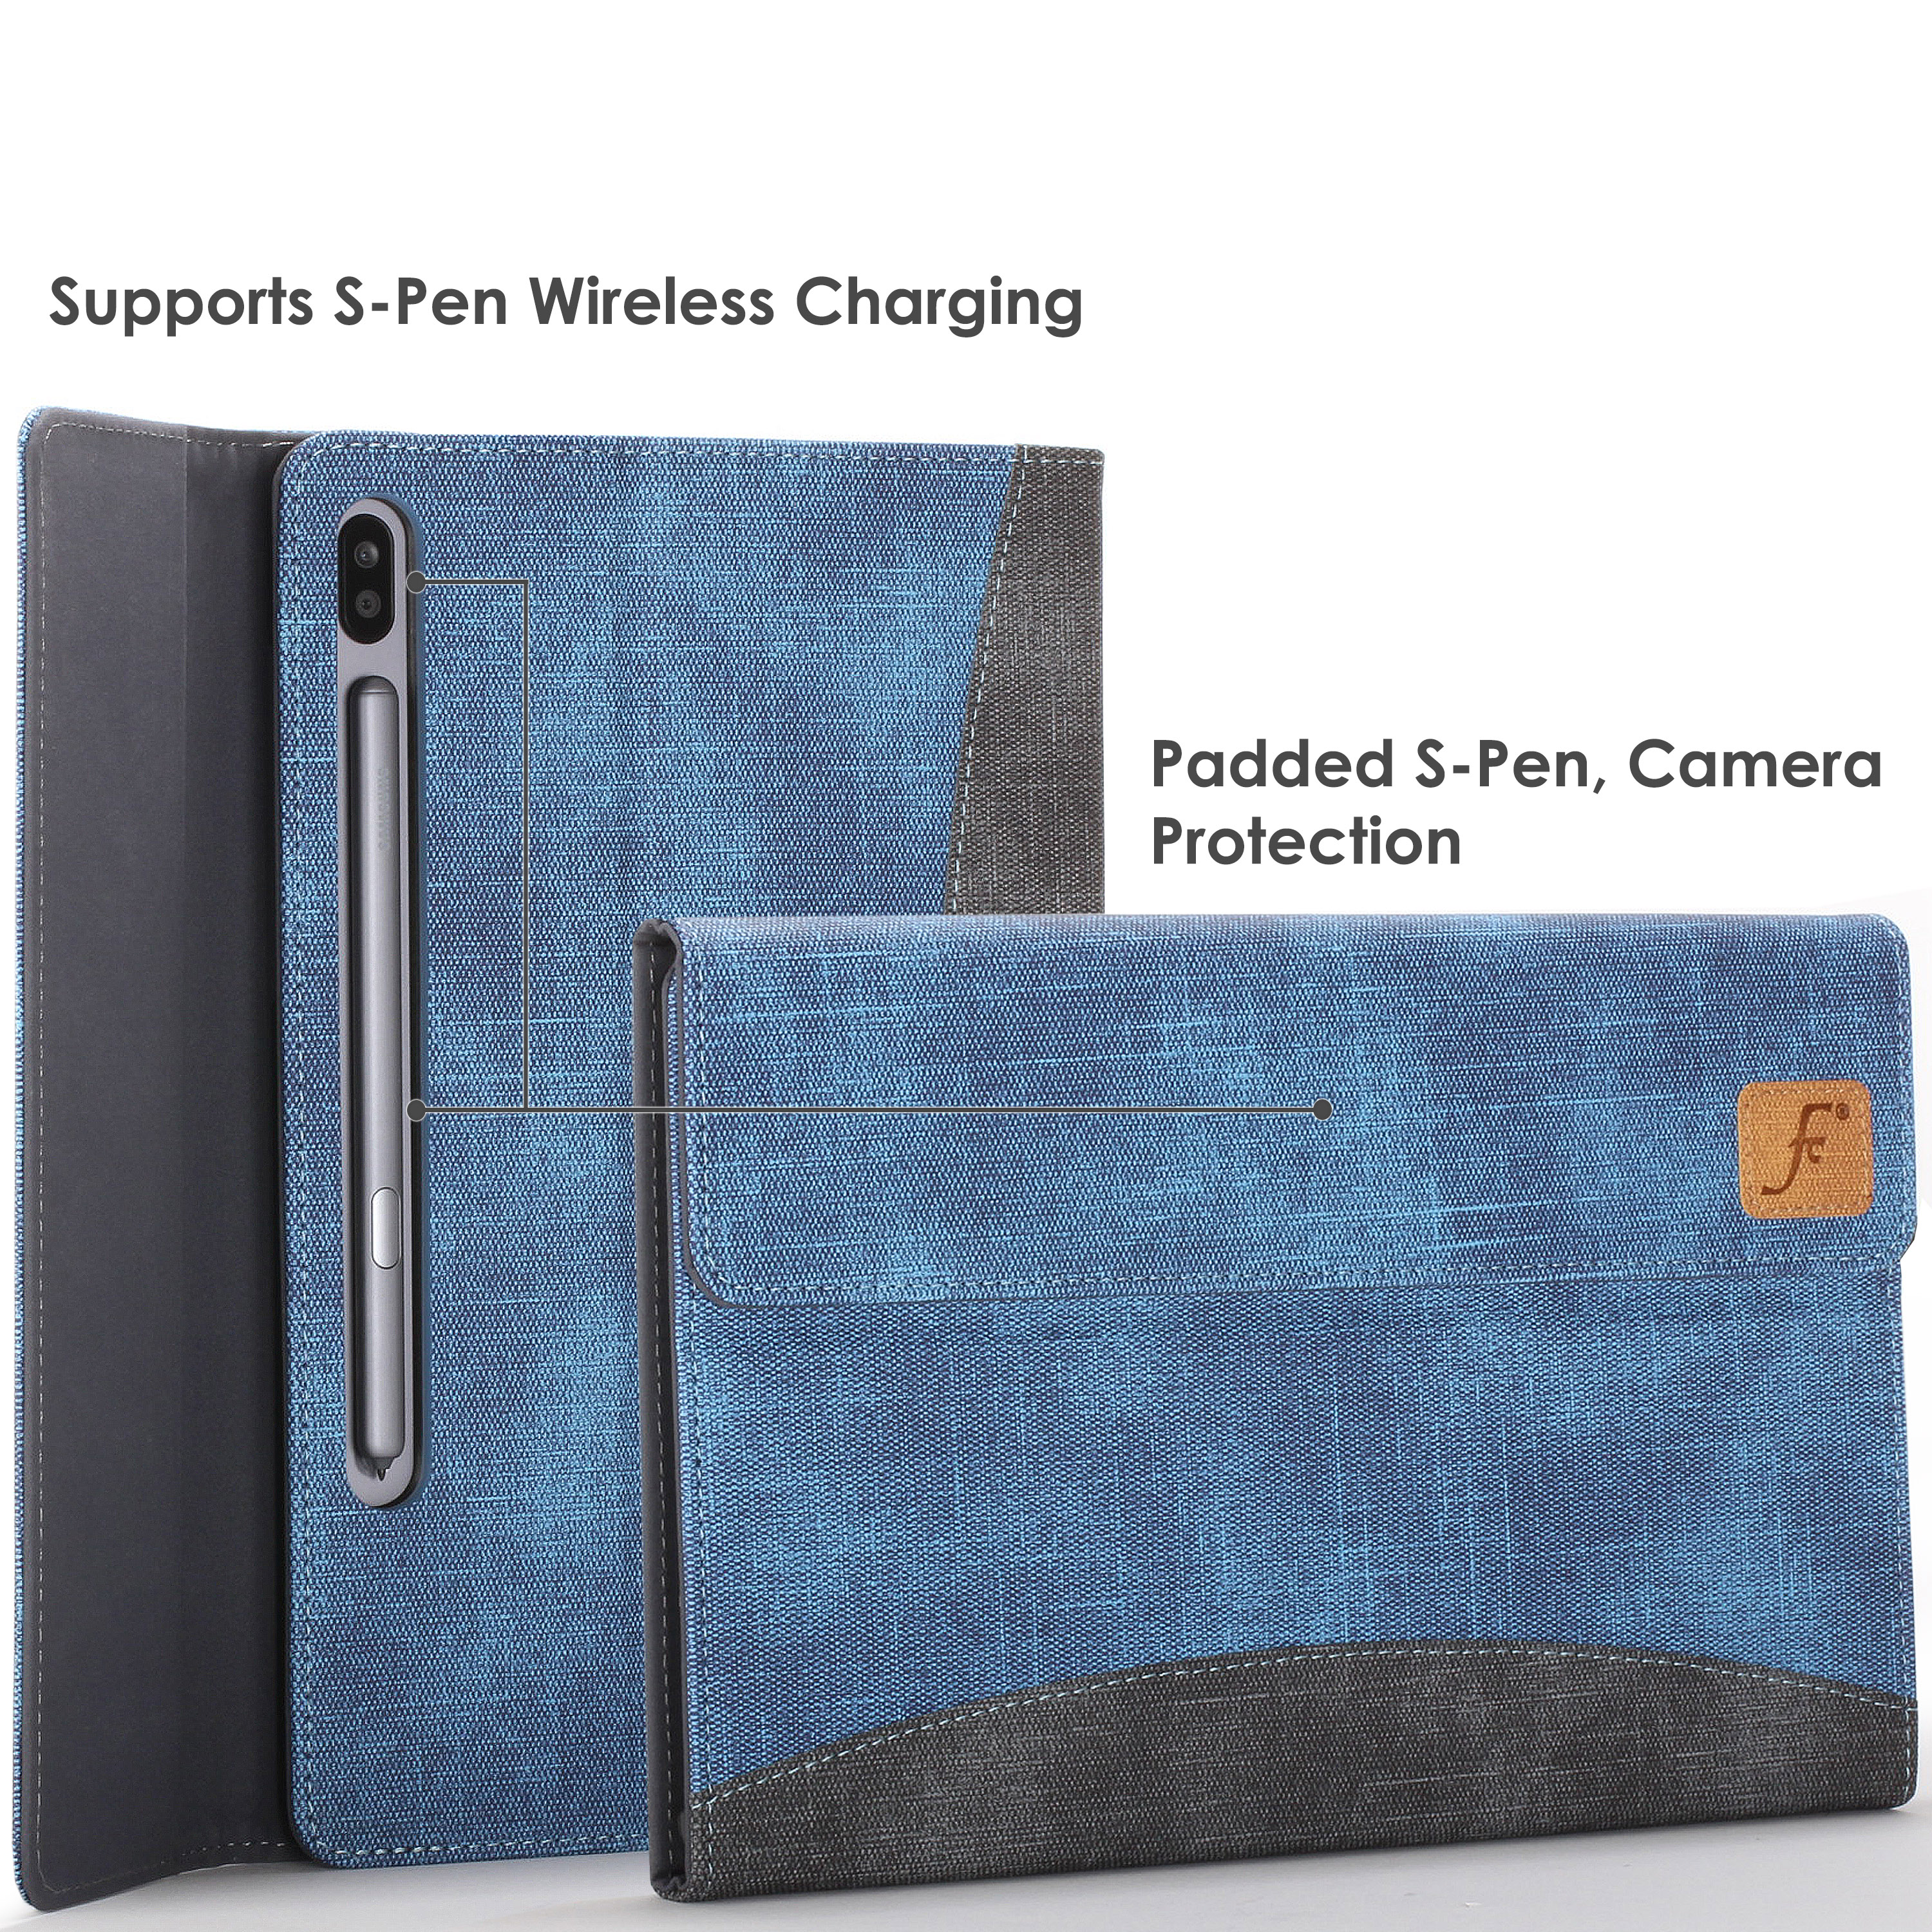 Samsung-Galaxy-Tab-S6-10-5-Case-Cover-Stand-with-Document-Pocket-Stylus thumbnail 29